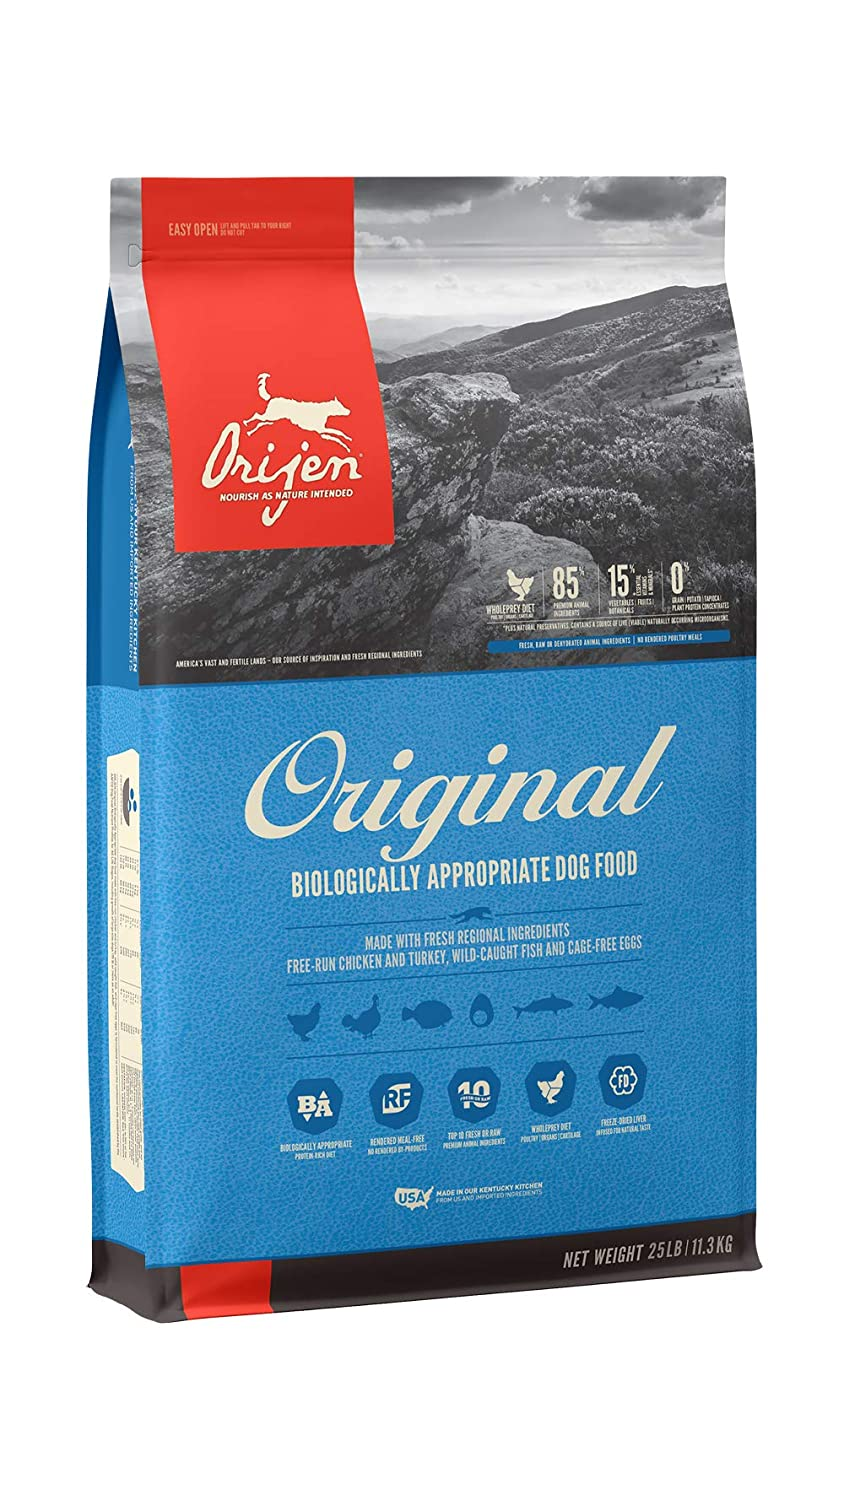 1.Orijen High Protein Dry Dog Food